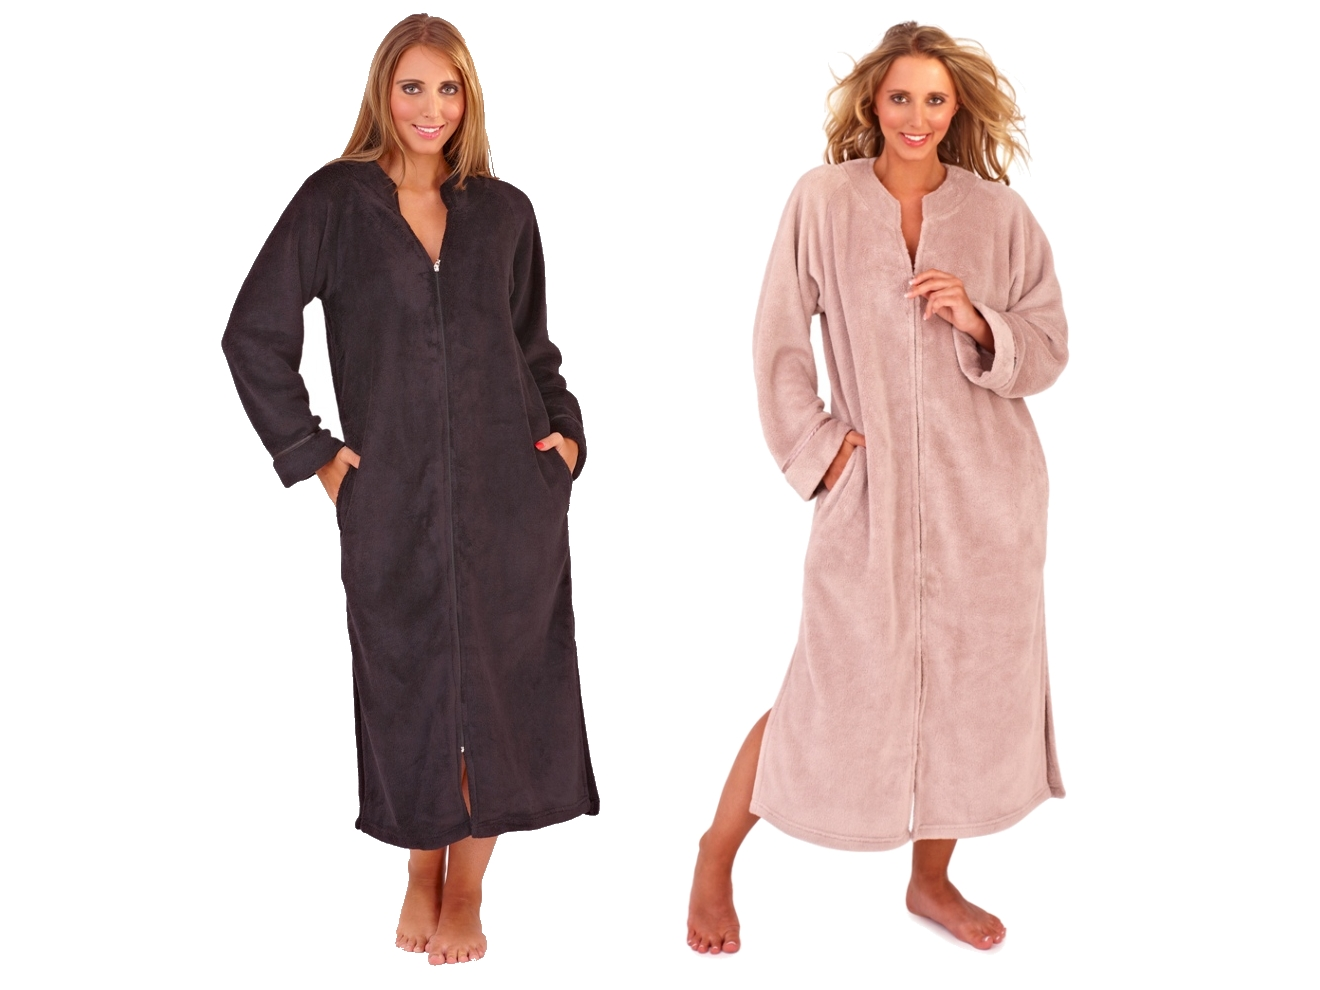 Zipped Dressing Gown Full Length - Best Ideas Gowns